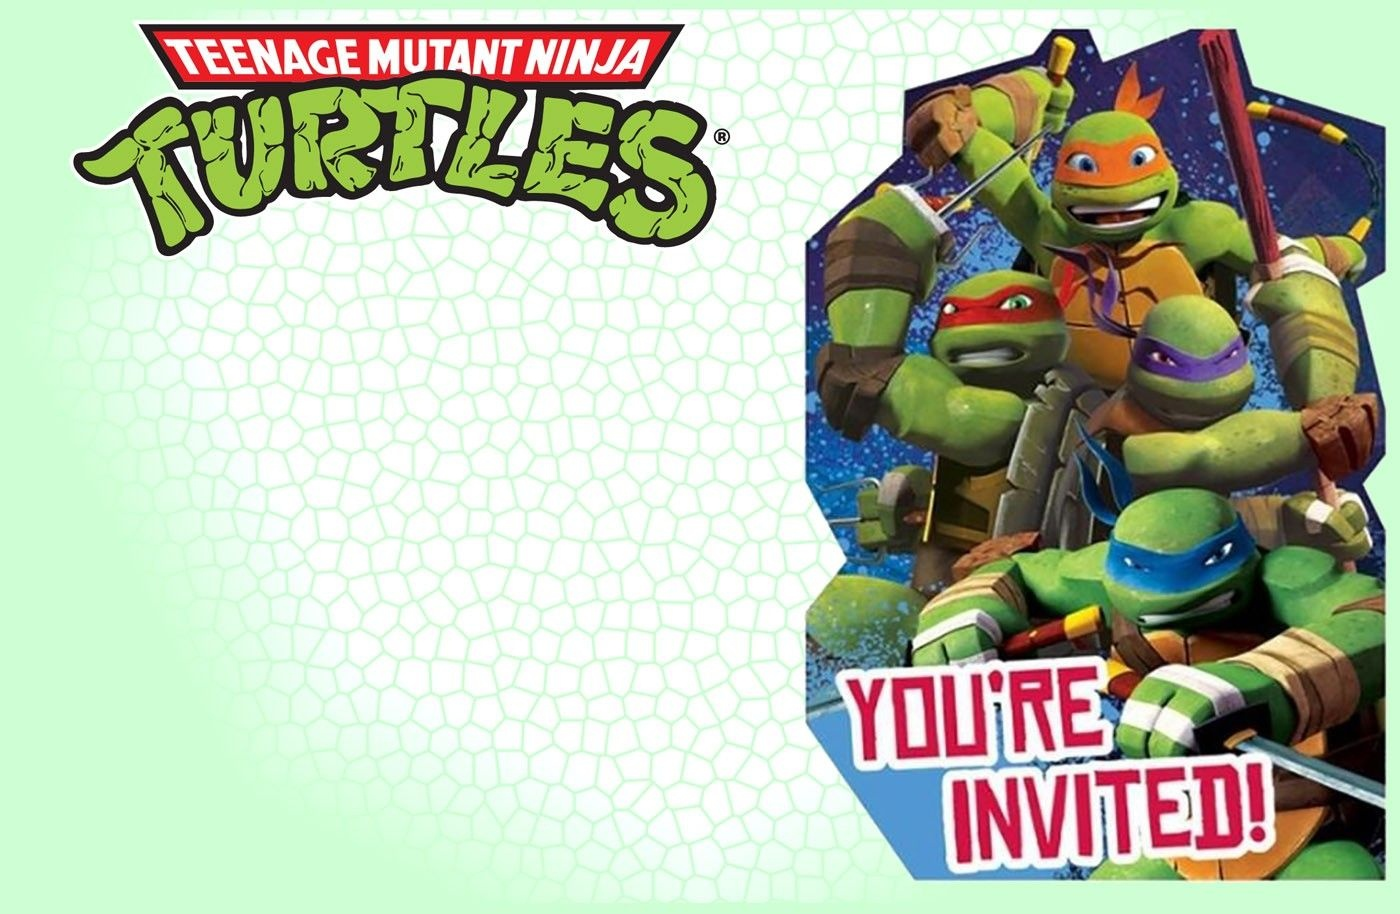 Editable Ninja Turtle Invitation Template | Tkb Printables In 2019 - Free Printable Ninja Turtle Birthday Invitations